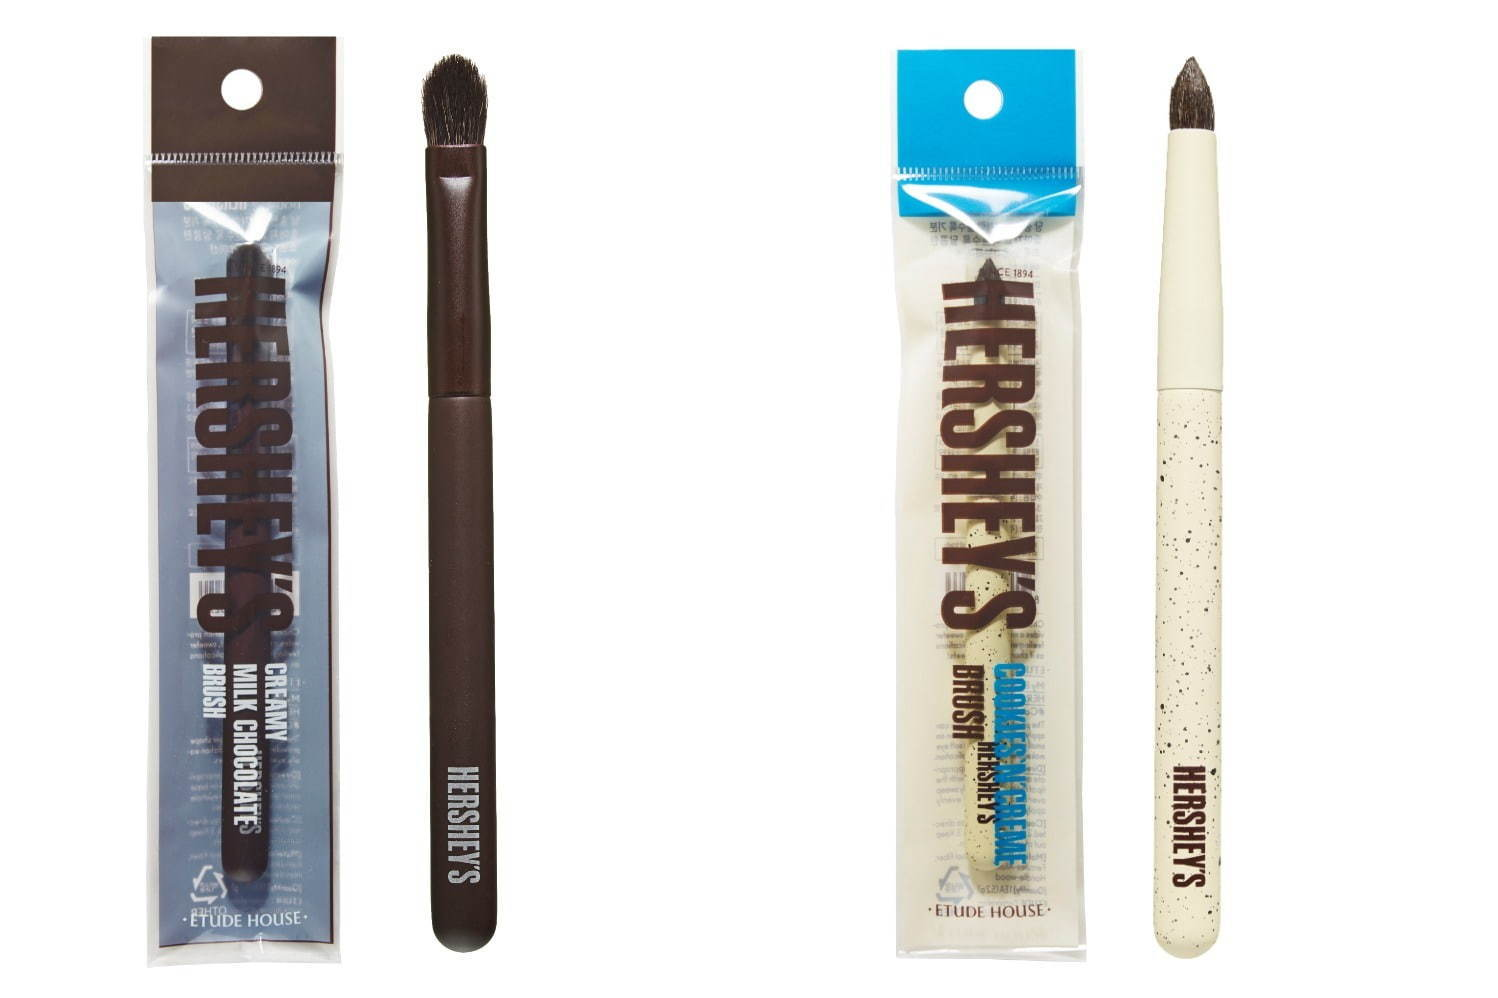 Etude House Hershey Chocolate Brushes